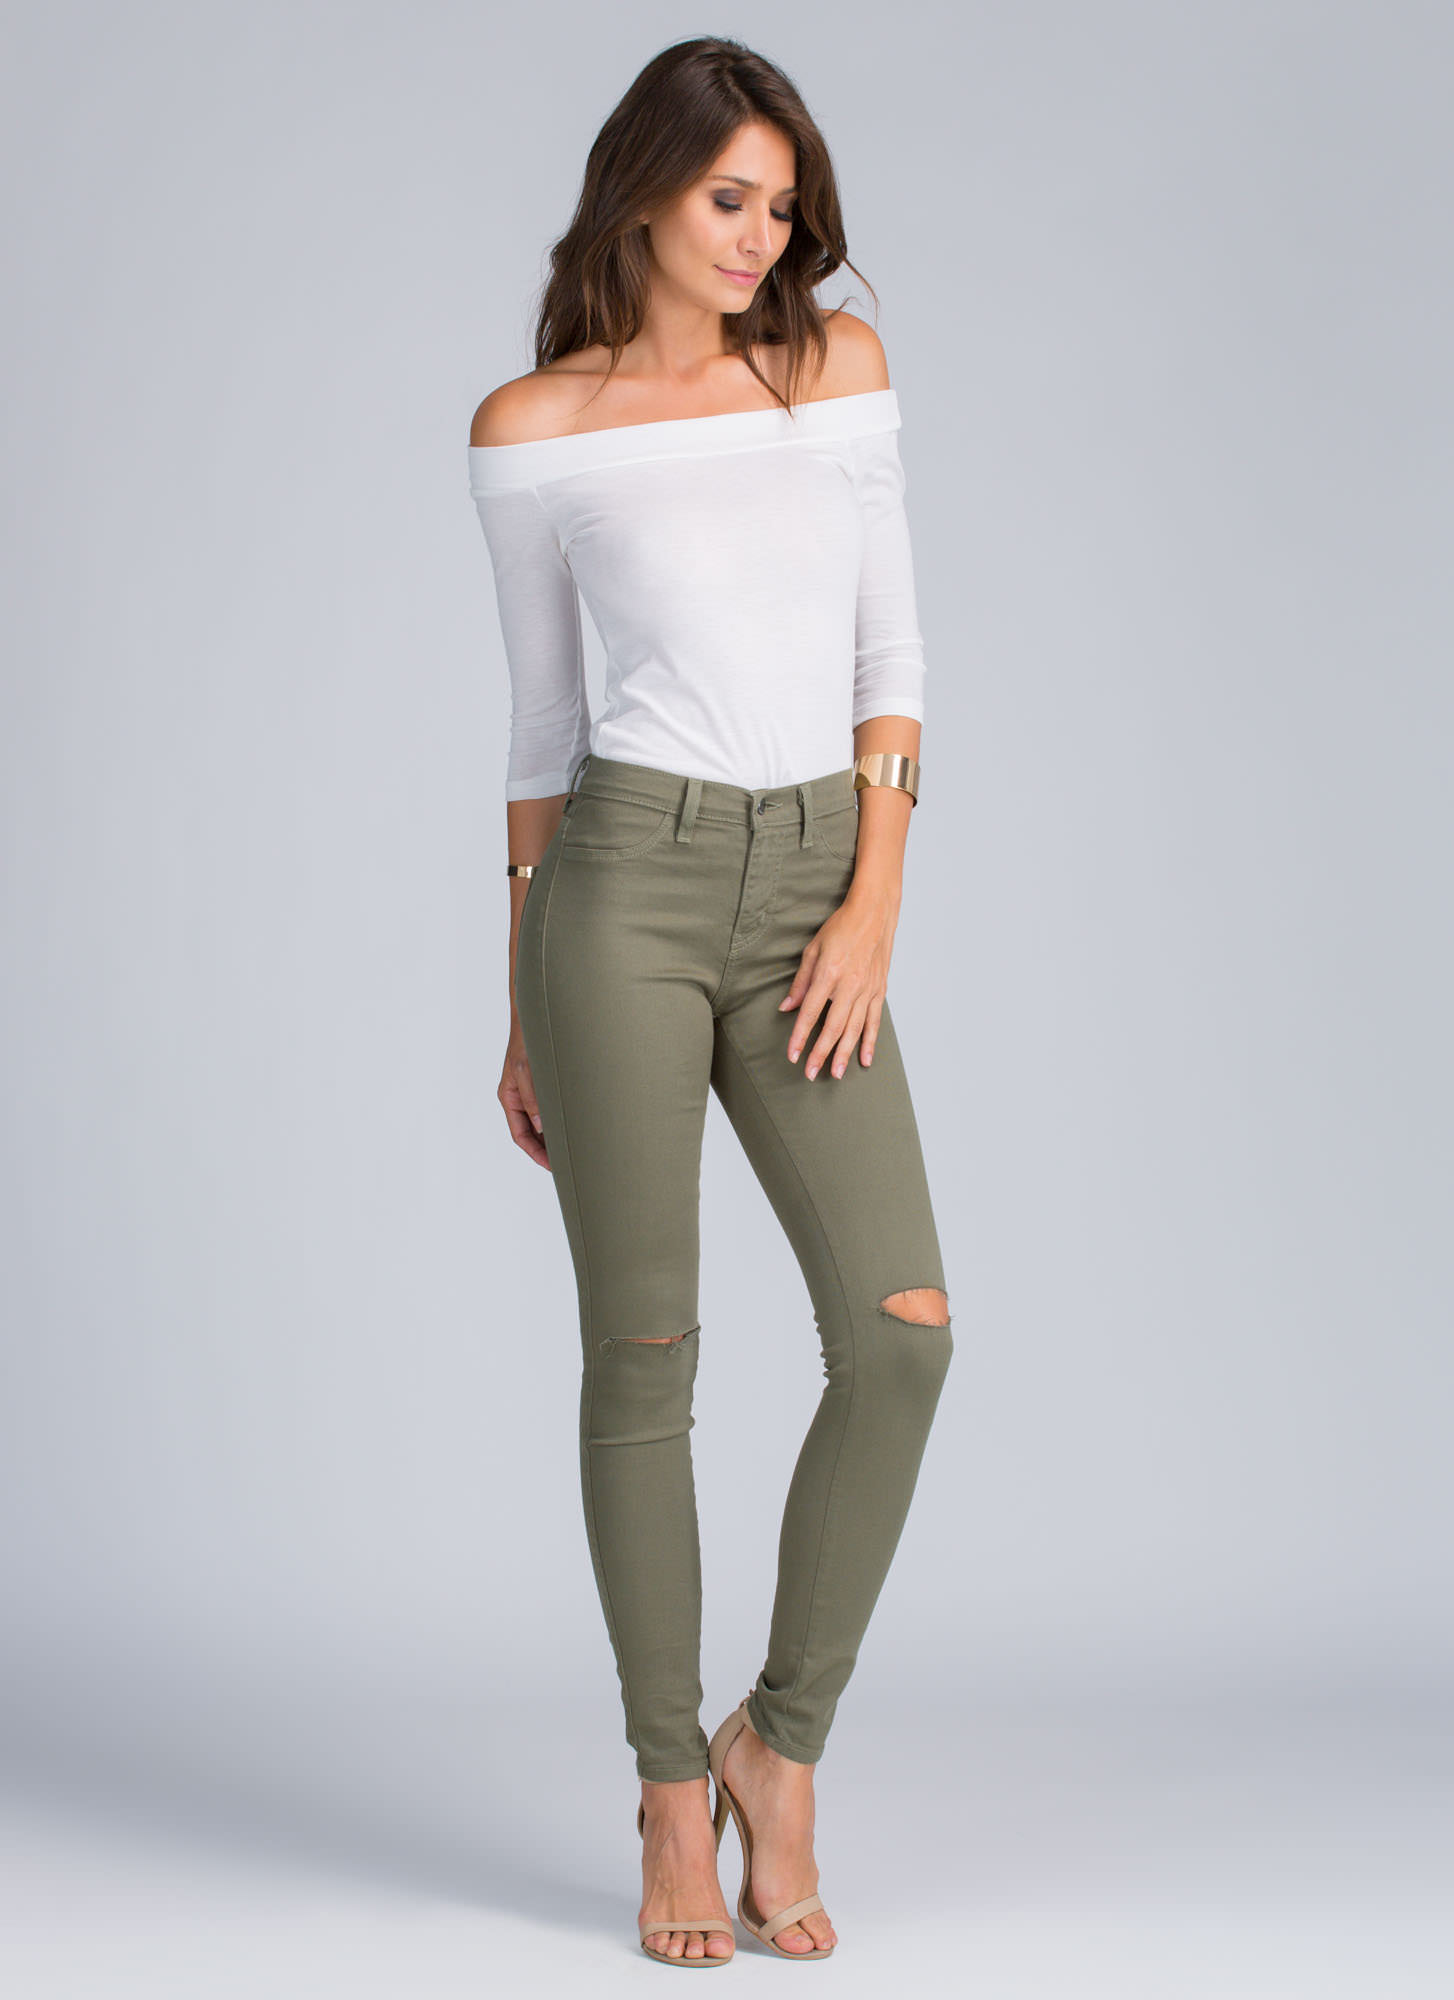 High Waisted Green Jeans